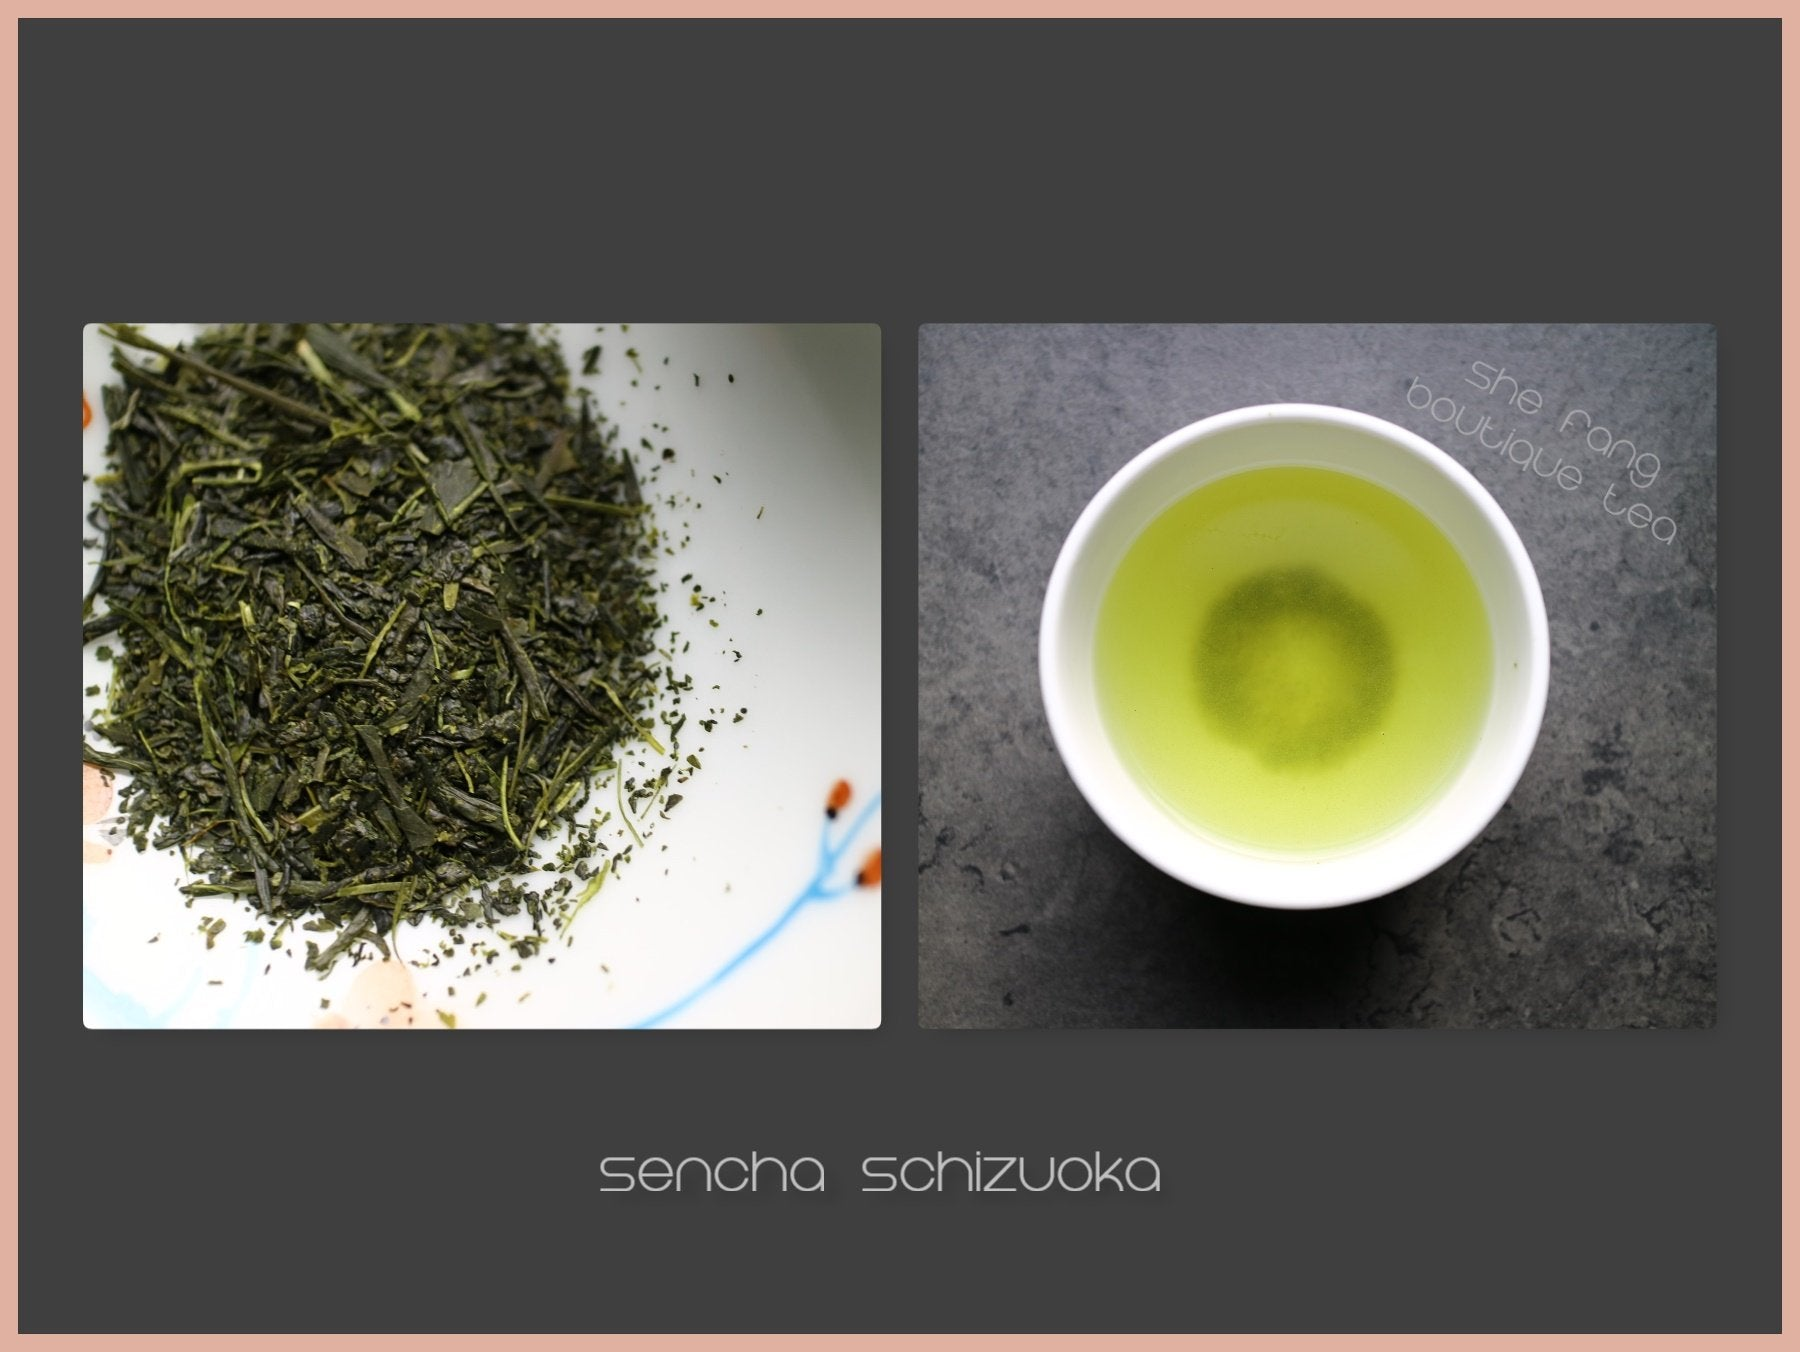 Tea sourcing batch N.239 - Teas from Japan - Sencha from Schizuoka pref.